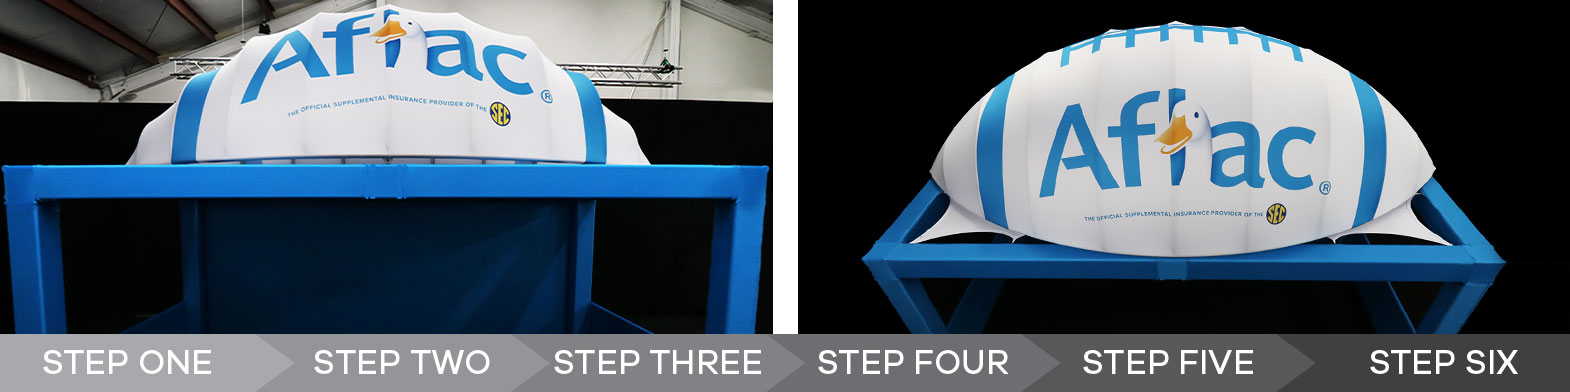 Two photos of the custom half-football and truss cover structure created for Aflac